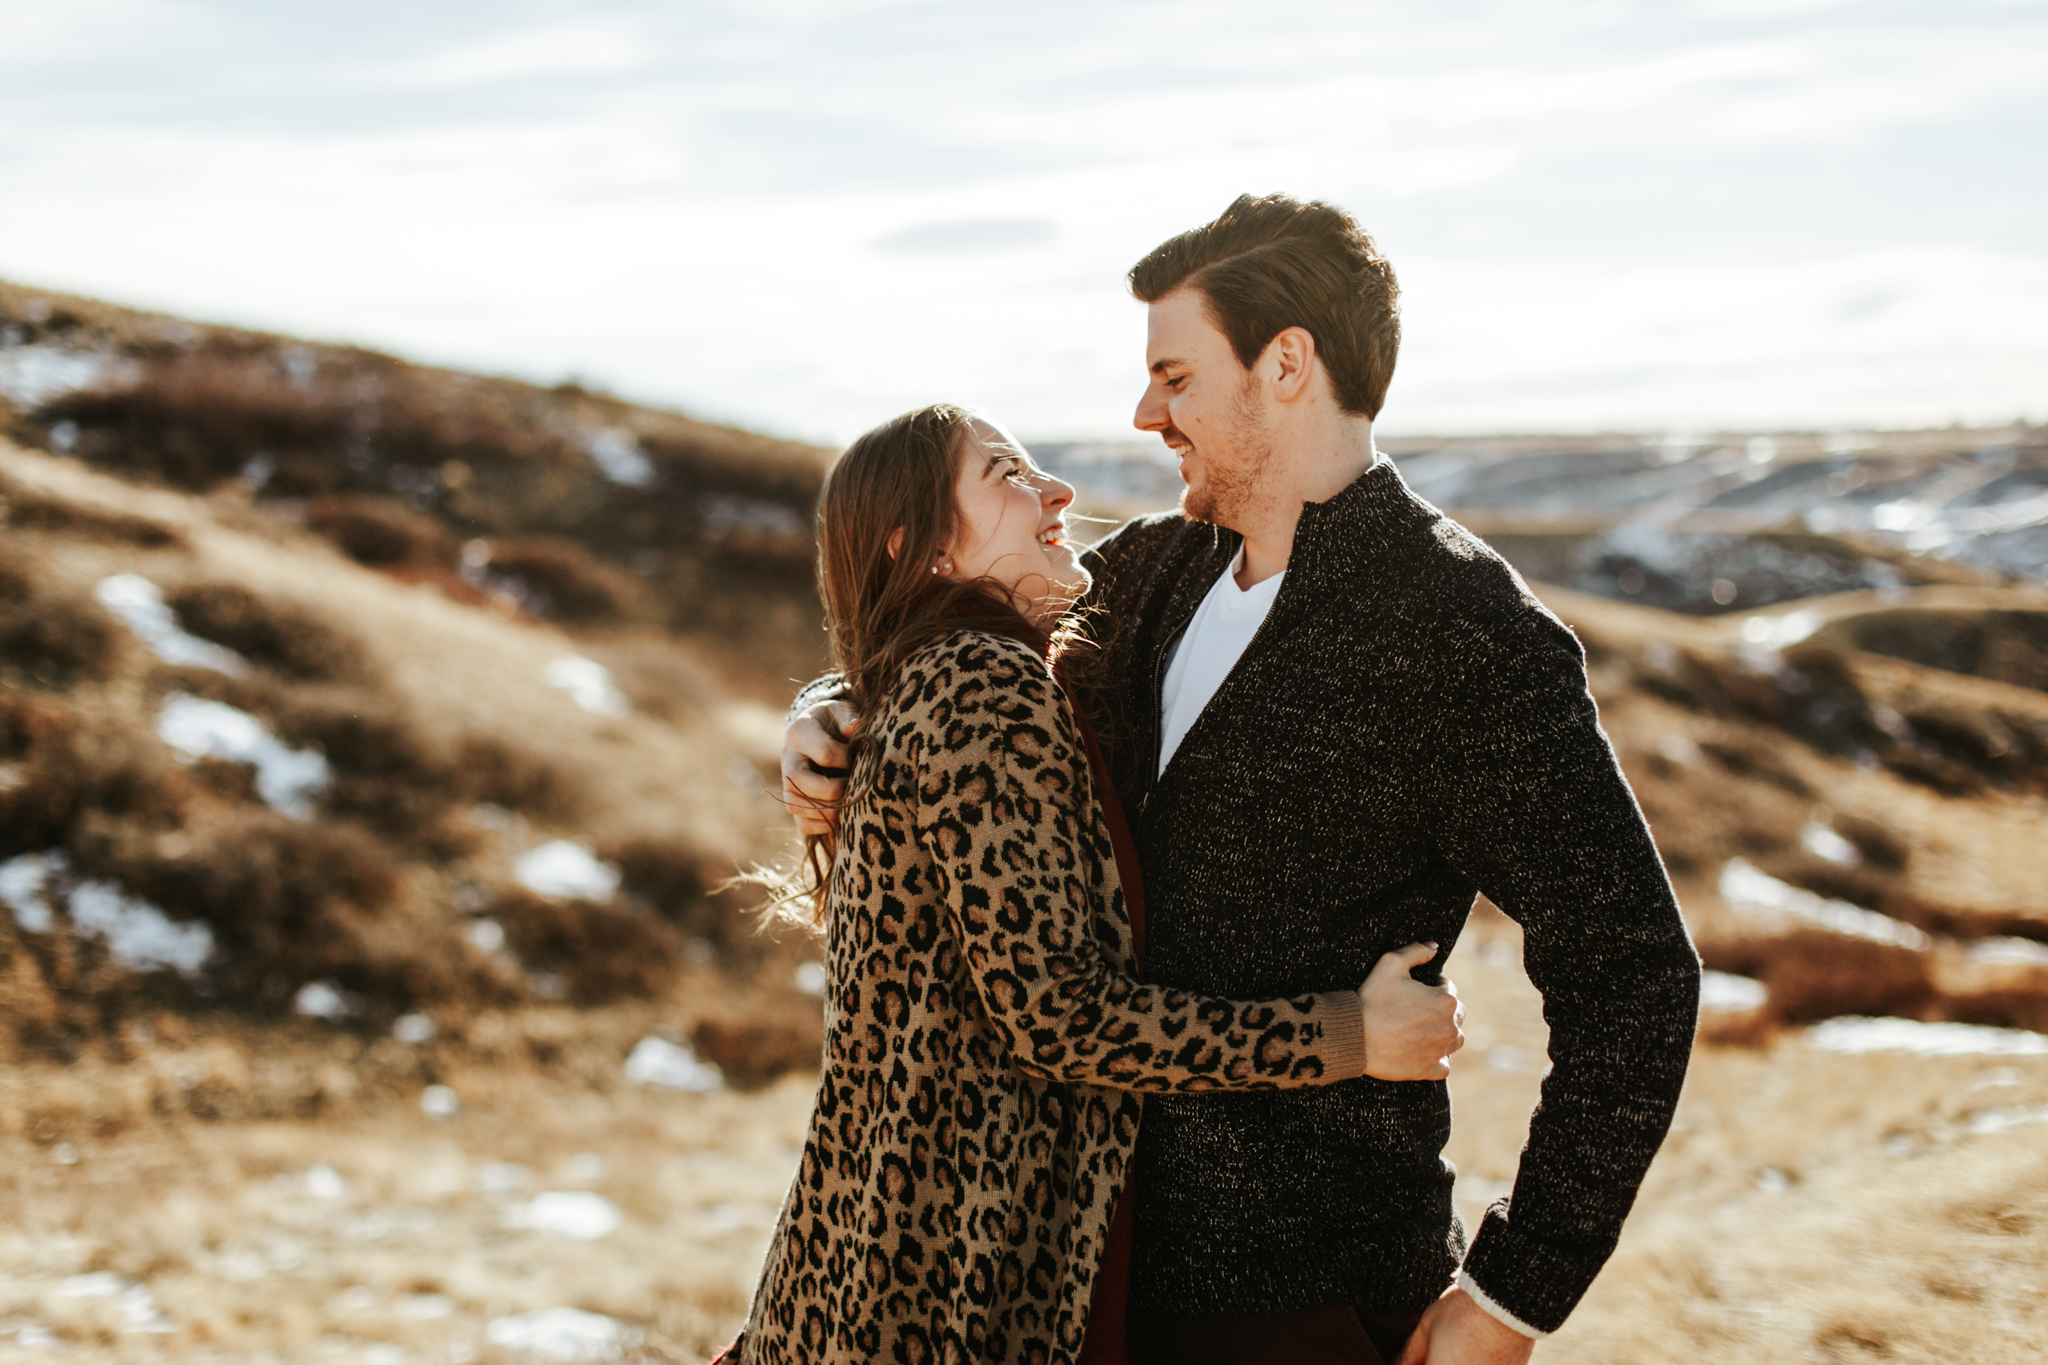 lethbridge-photographer-love-and-be-loved-photography-winter-engagement-emma-tanner-picture-image-photo-1.jpg